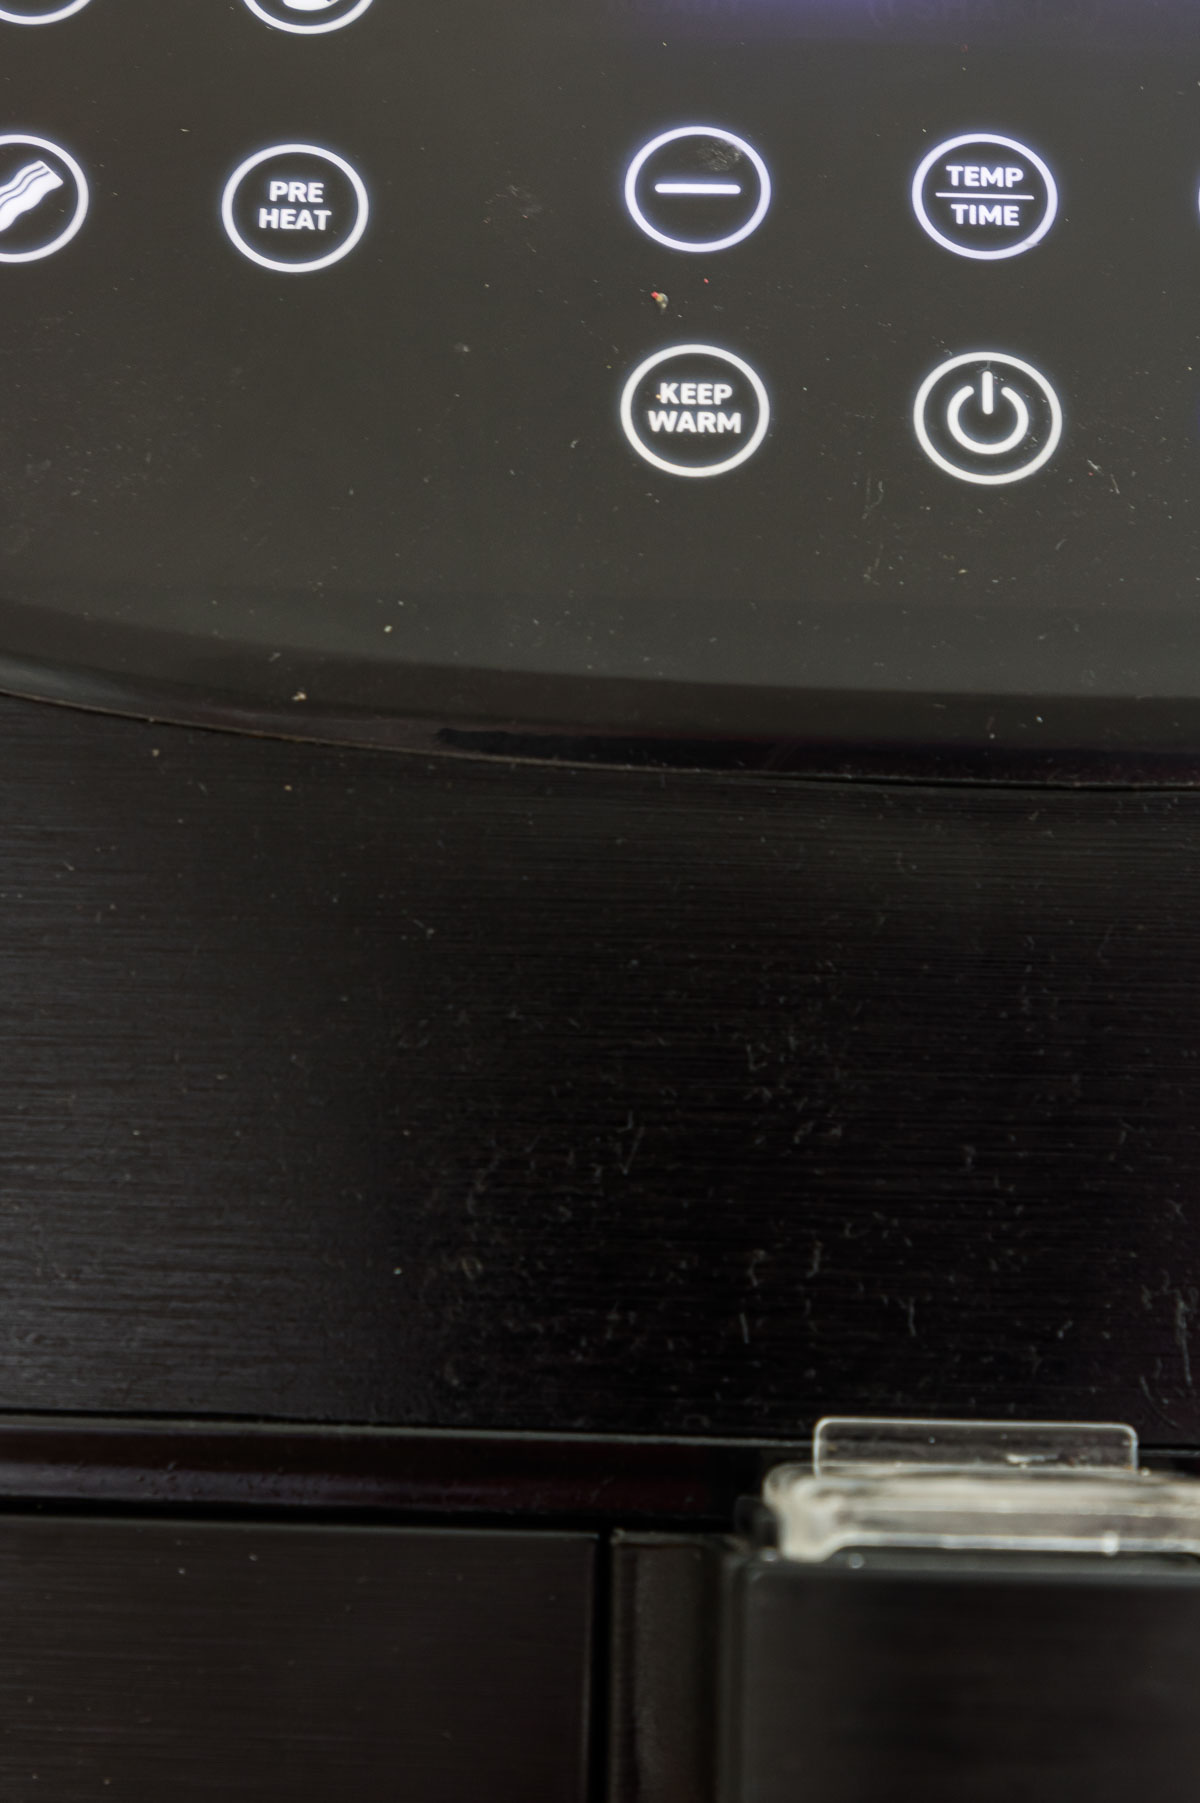 close up view of the preheat button on the panel of the air fryer